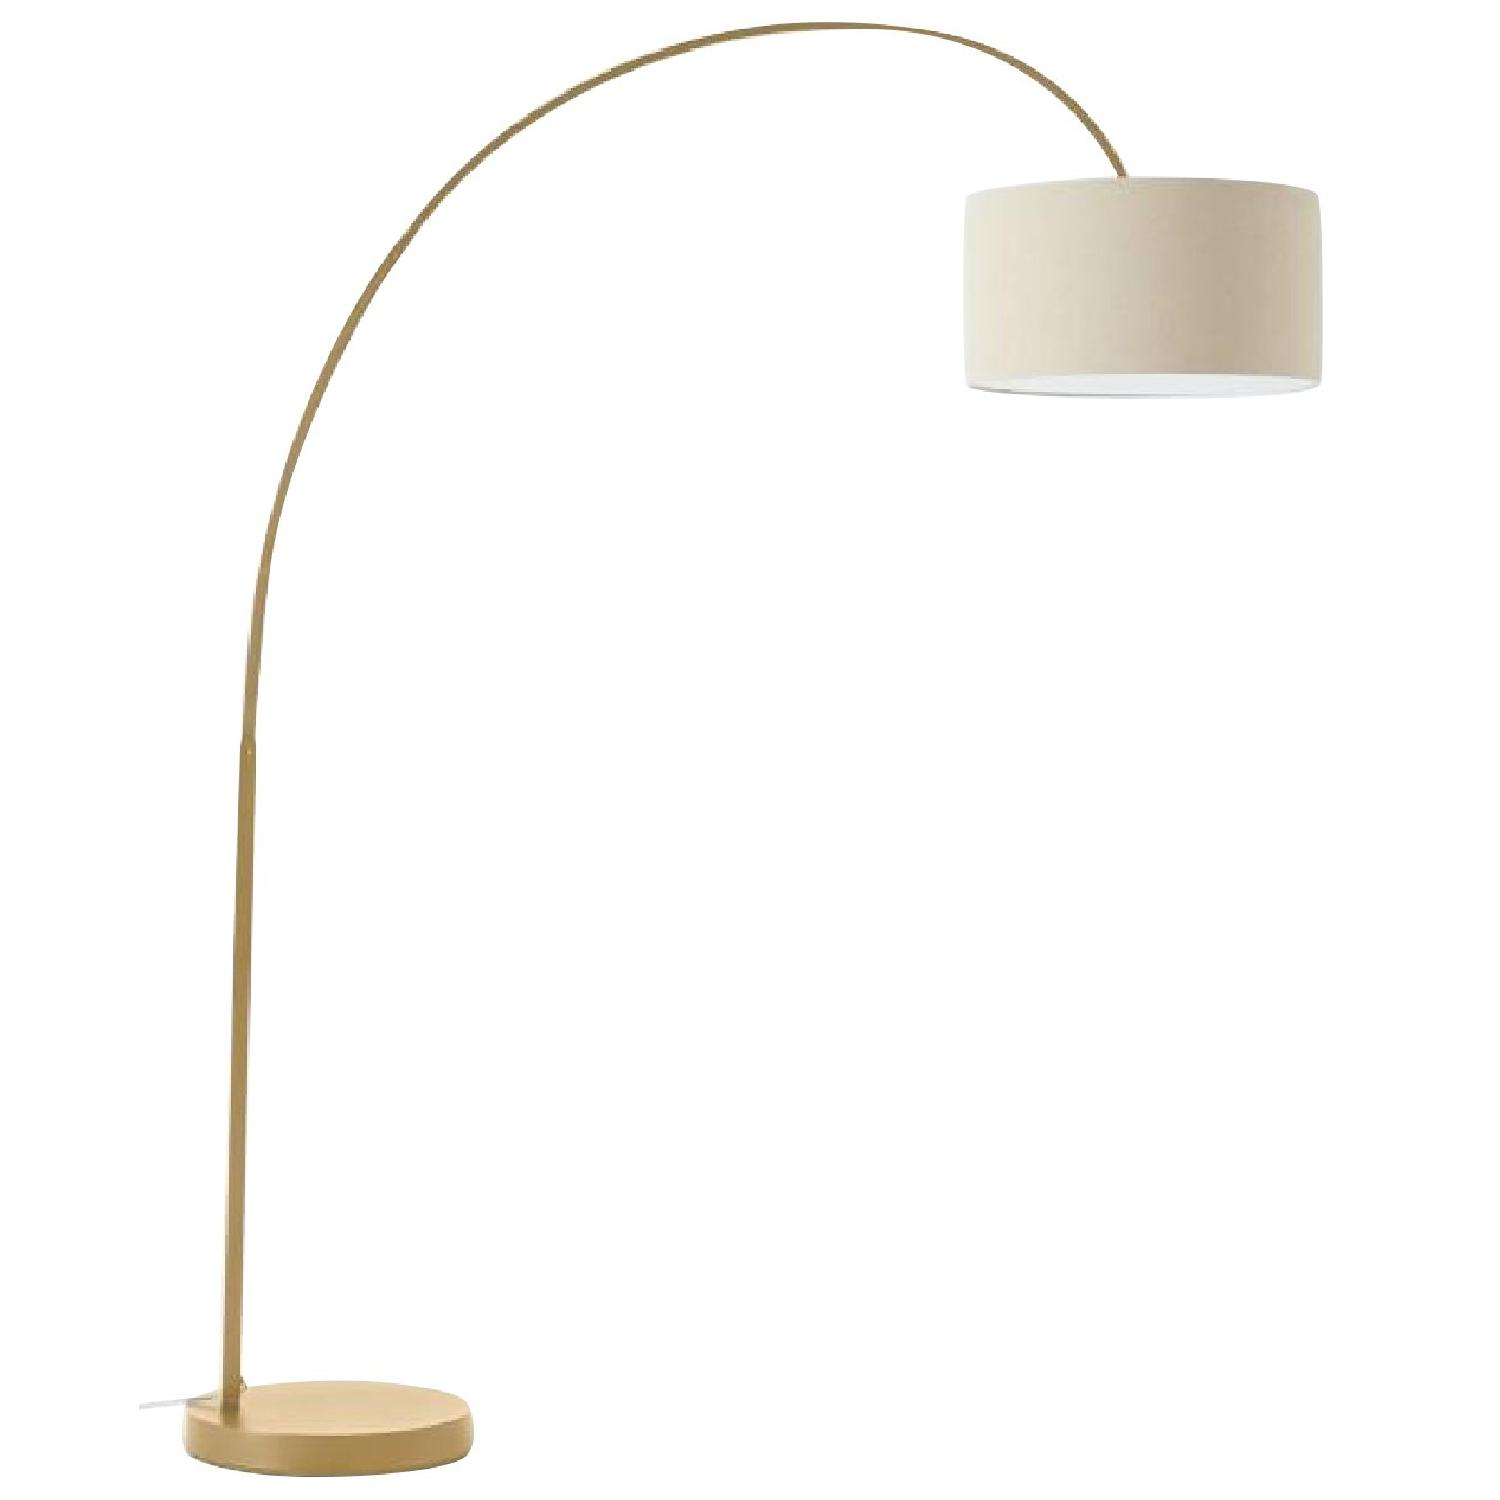 West Elm Overarching Floor Lamp in Antique Brass - image-0